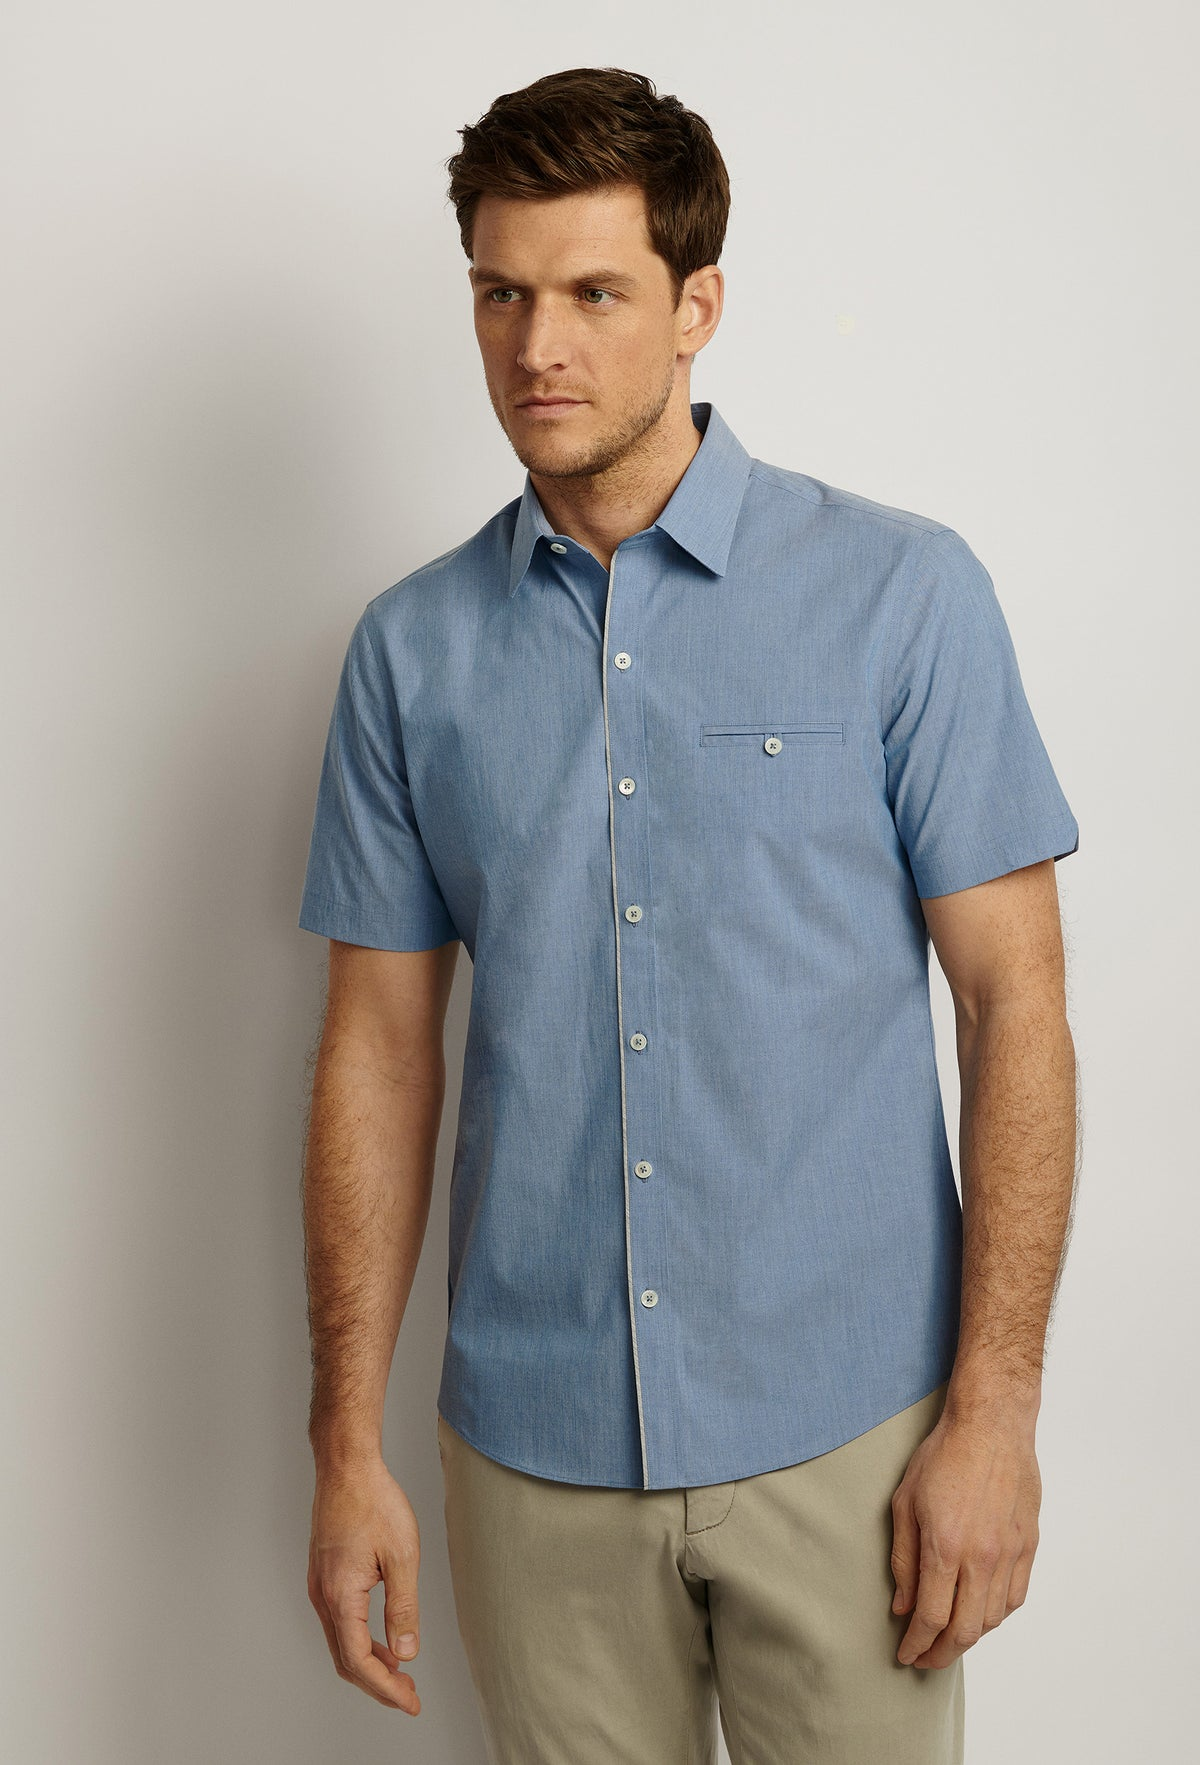 ZACHARY-PRELL-Baumann-ShirtsModern-Menswear-New-Dress-Code